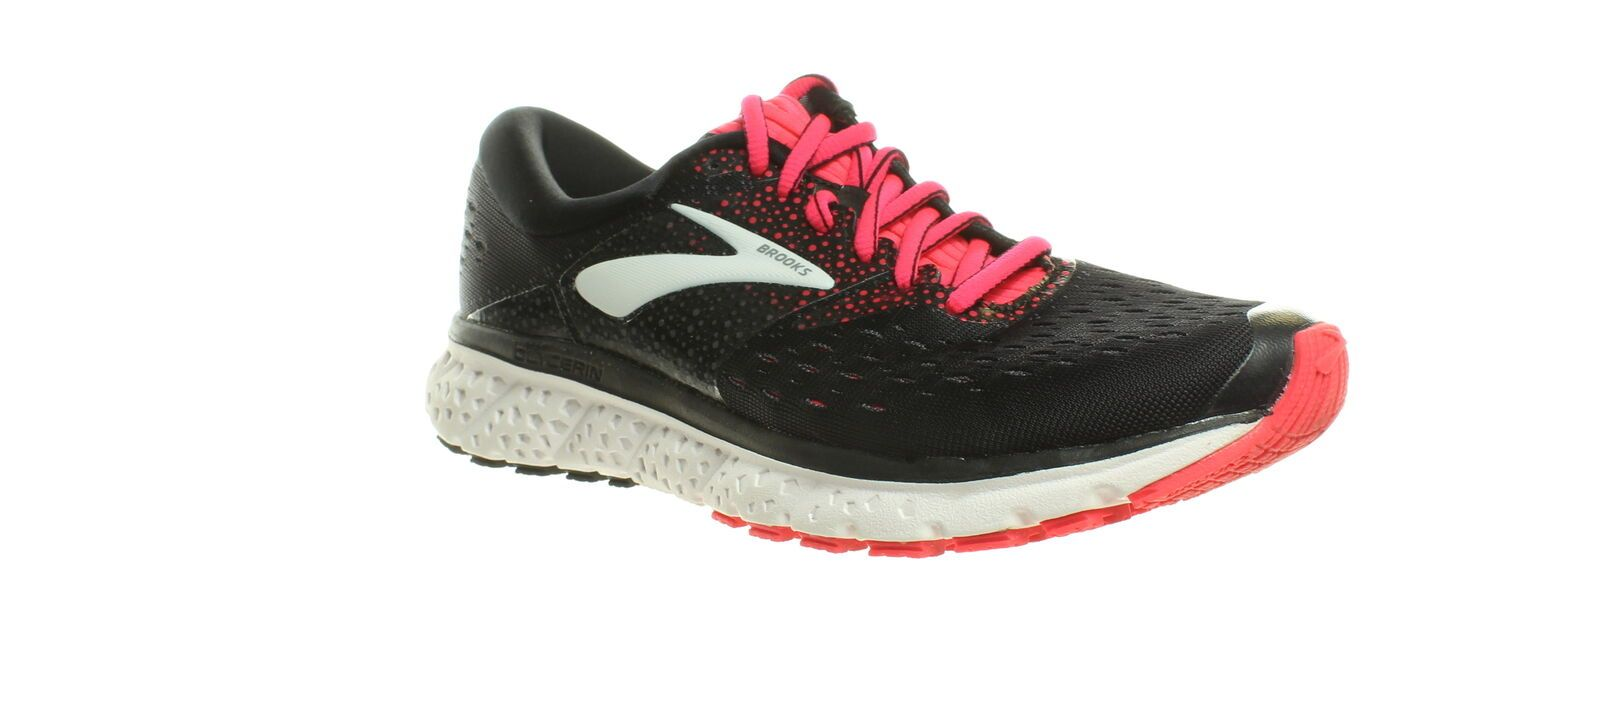 Brooks Womens Black Running Shoes Size